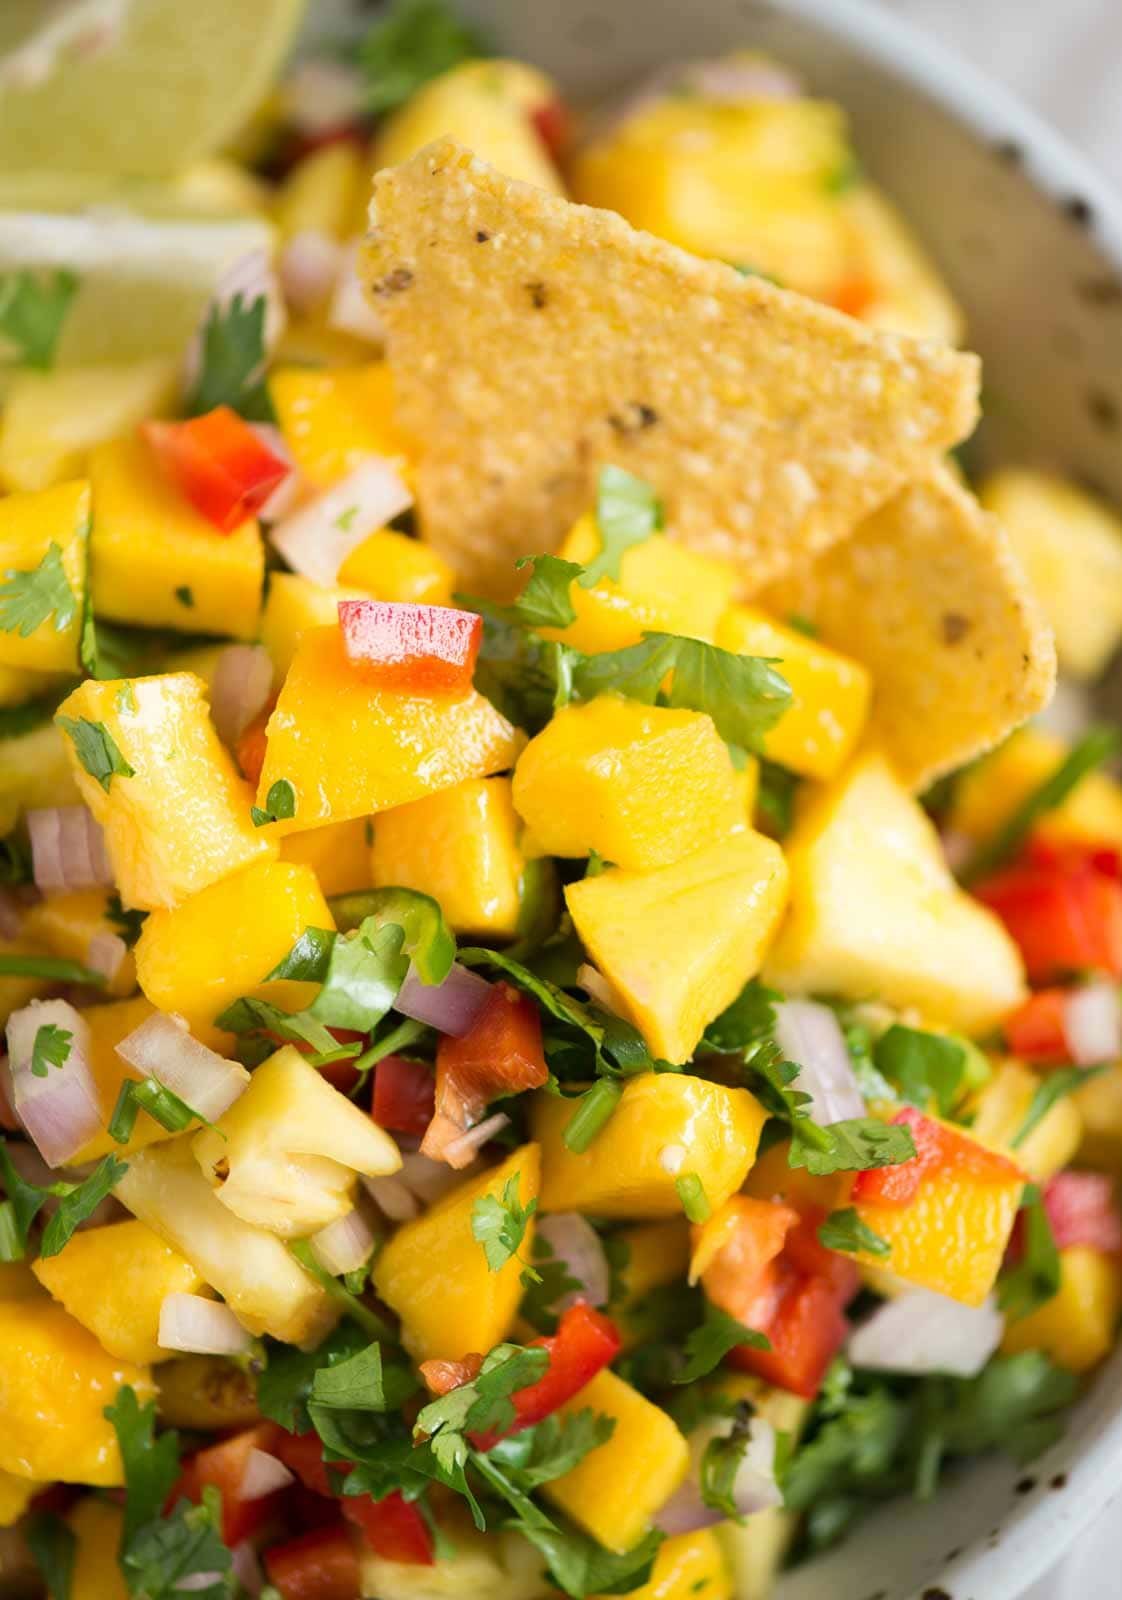 A sweet and spicy super easy salsa recipe that has two yum fruits - pineapple and mango. Pineapple Apple Salsa makes for the perfect summer treat with chips.